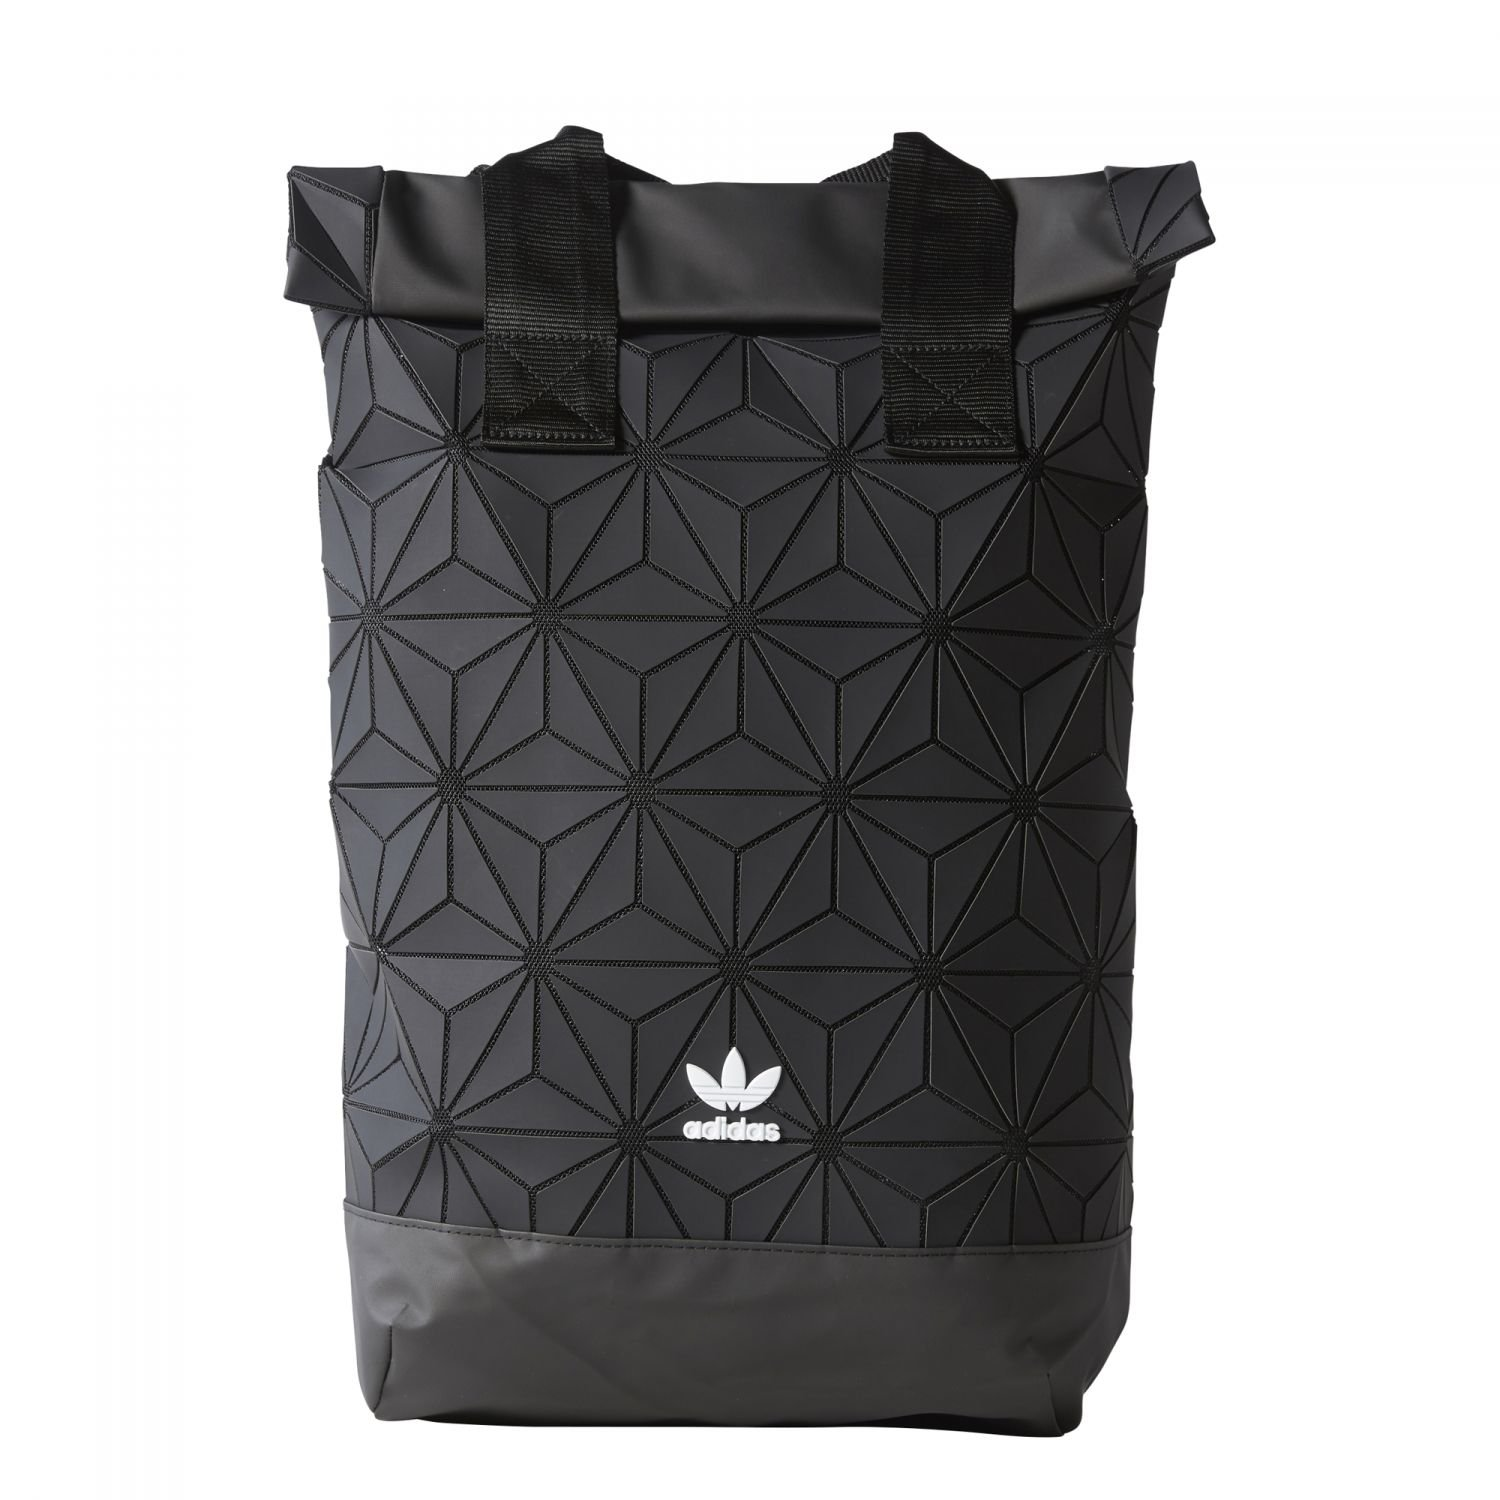 a5a607803f99 adidas Originals BP Roll Top 3D Mesh 2017 Black Backpack Bag DH0100   Amazon.co.uk  Clothing